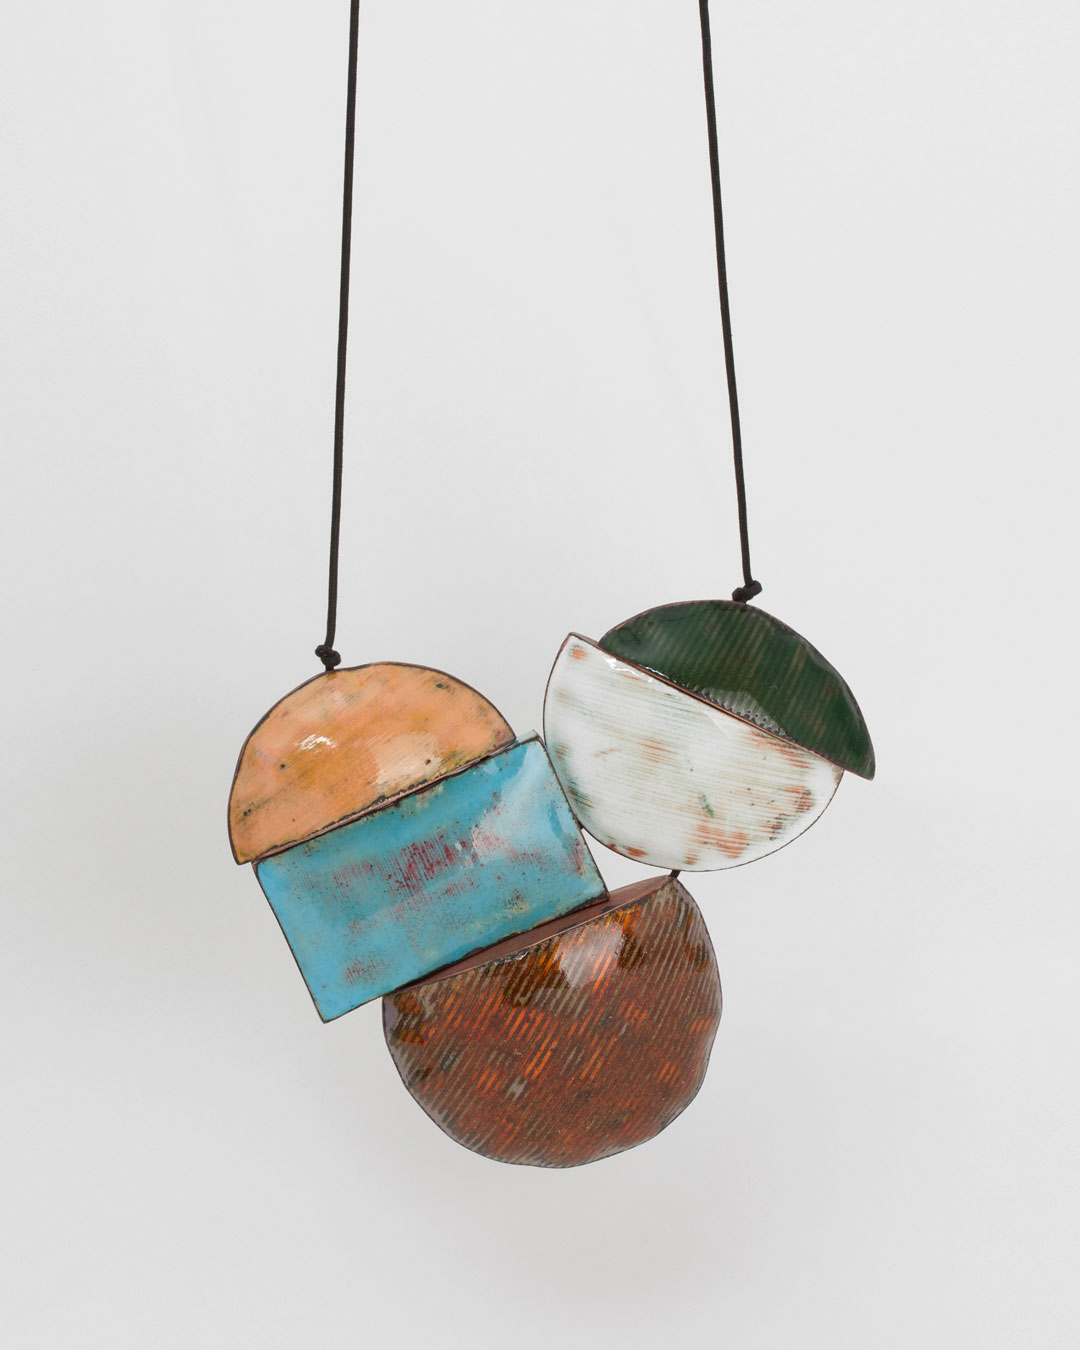 Nicole Beck, Playground, 2018, necklace; copper, enamel, thread, 170 x 140 x 40 mm, €3650